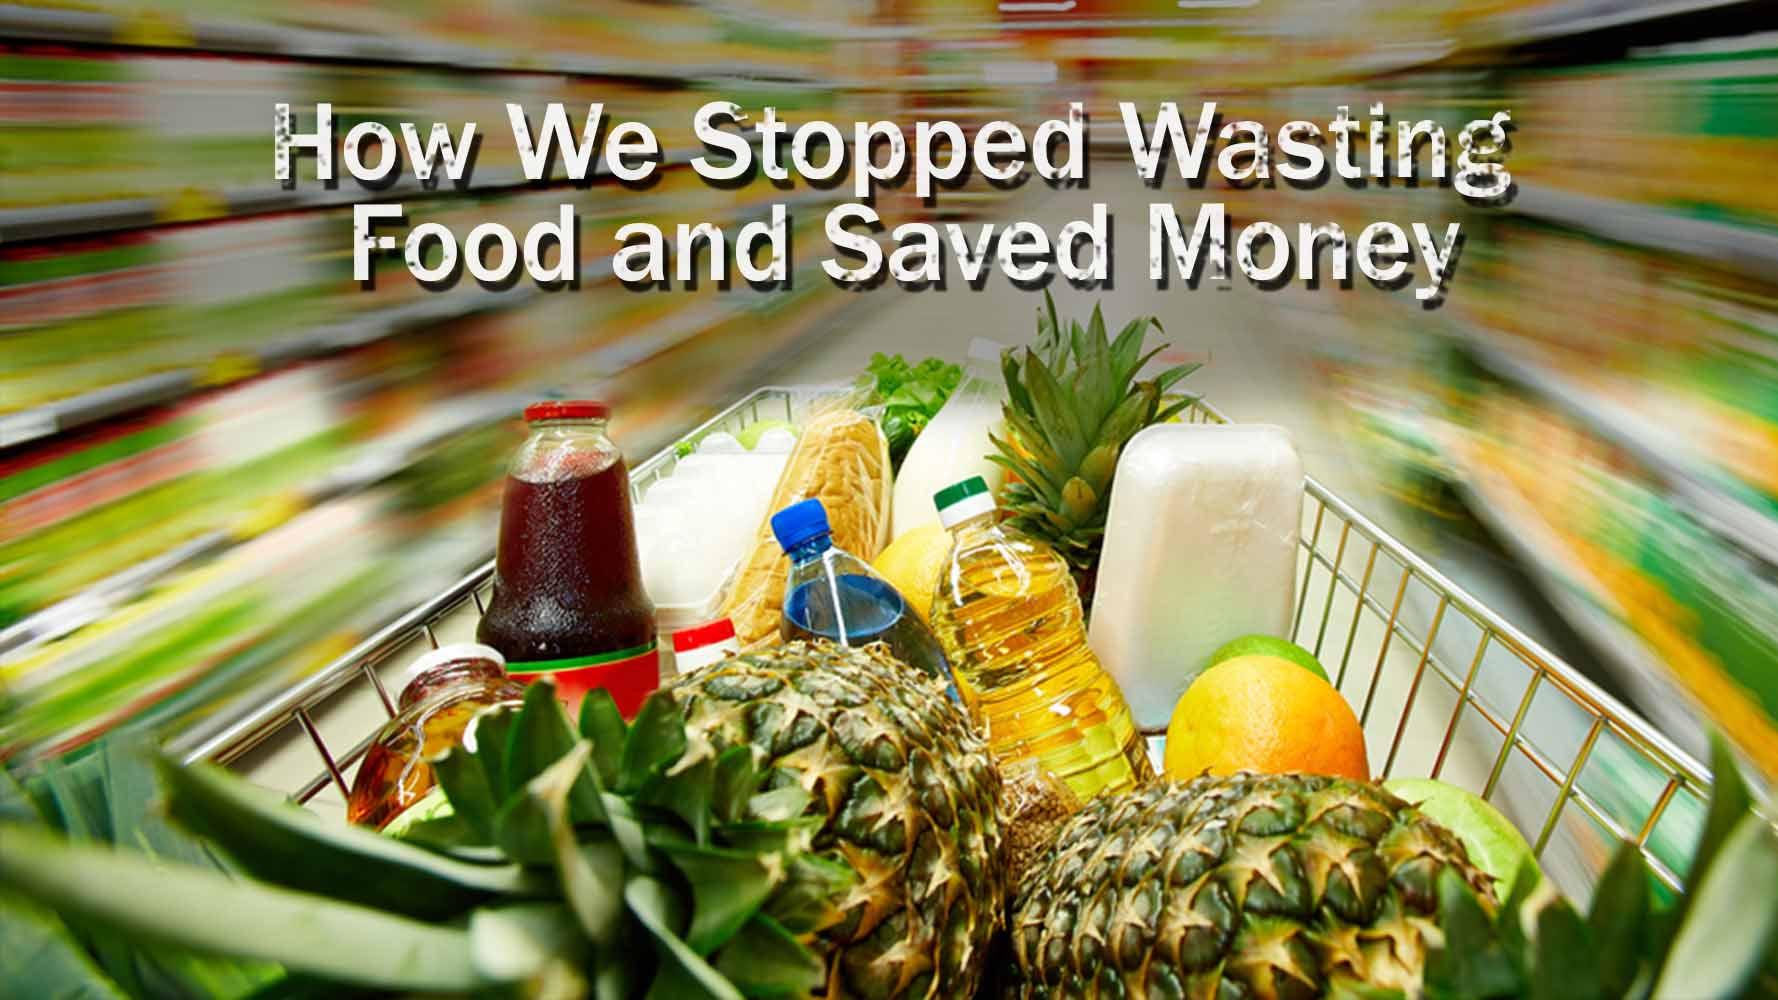 Stop Wasting Food And Money